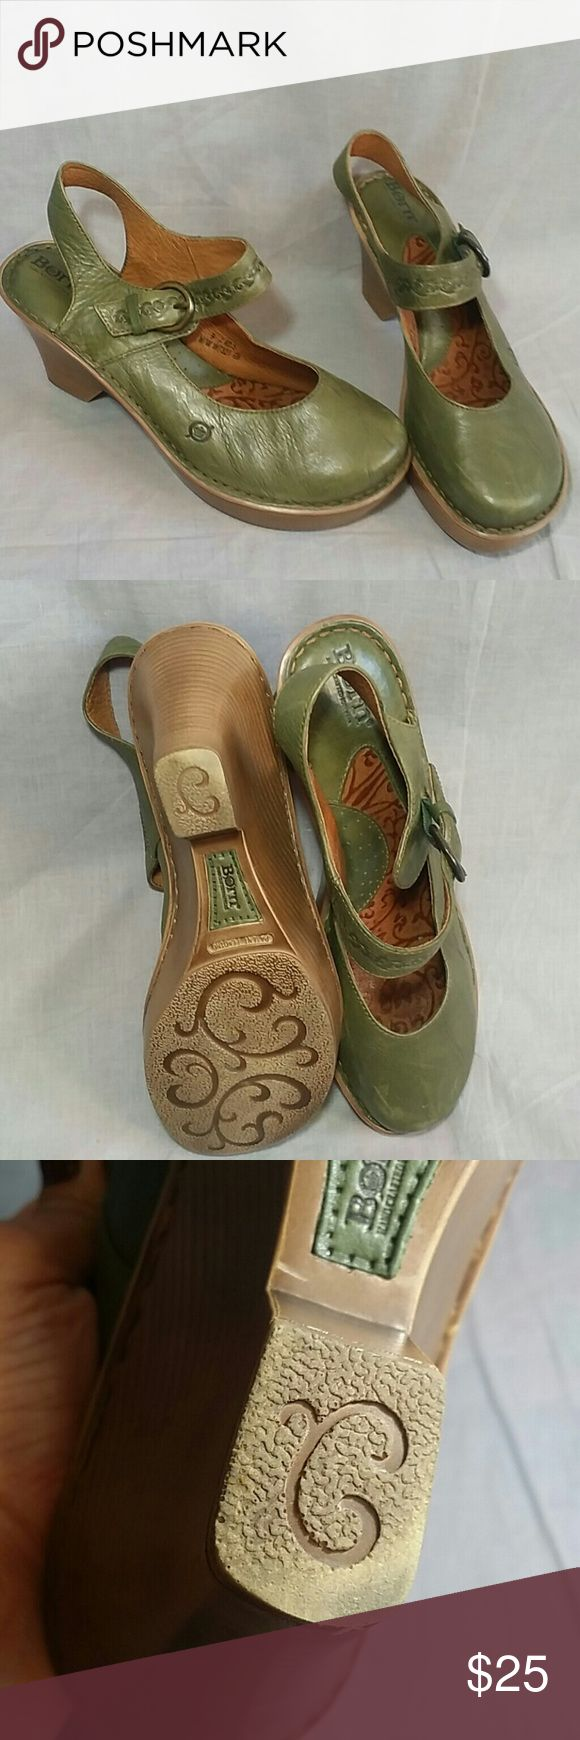 """Born Clogs Mary Jane Shoes Green 9/40.5 M Leather Women's clogs heels 3.5"""" ankle strap item is in a good condition. Born Shoes Heels"""